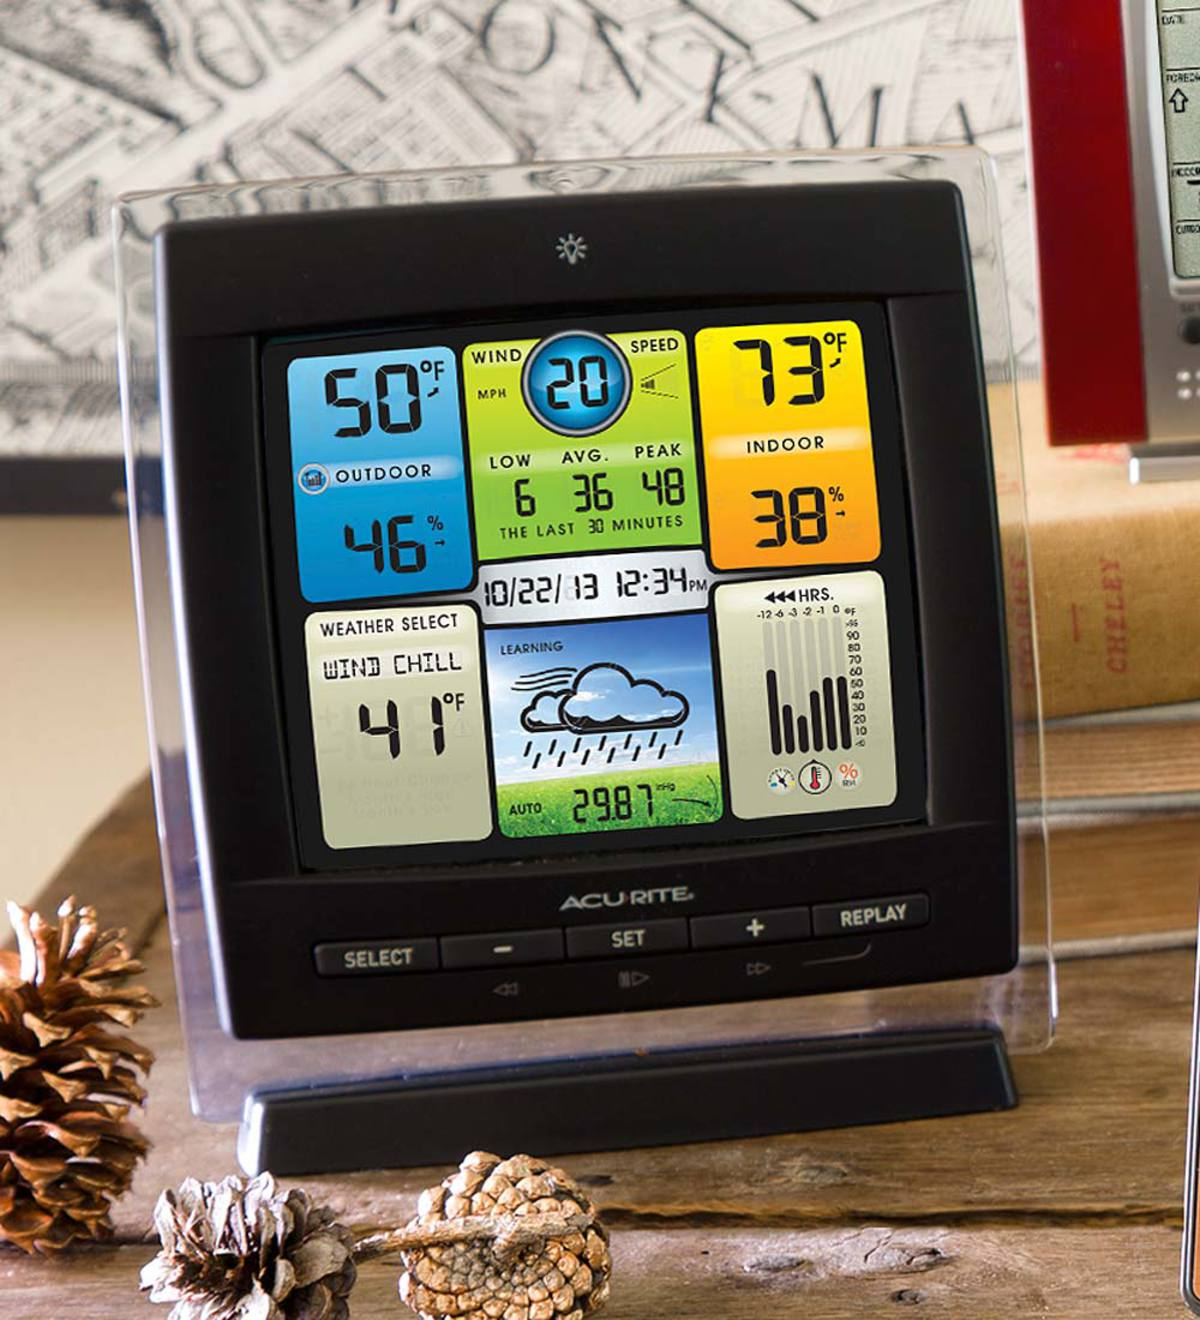 AcuRite® 3-in-1 Weather Center with Color Display